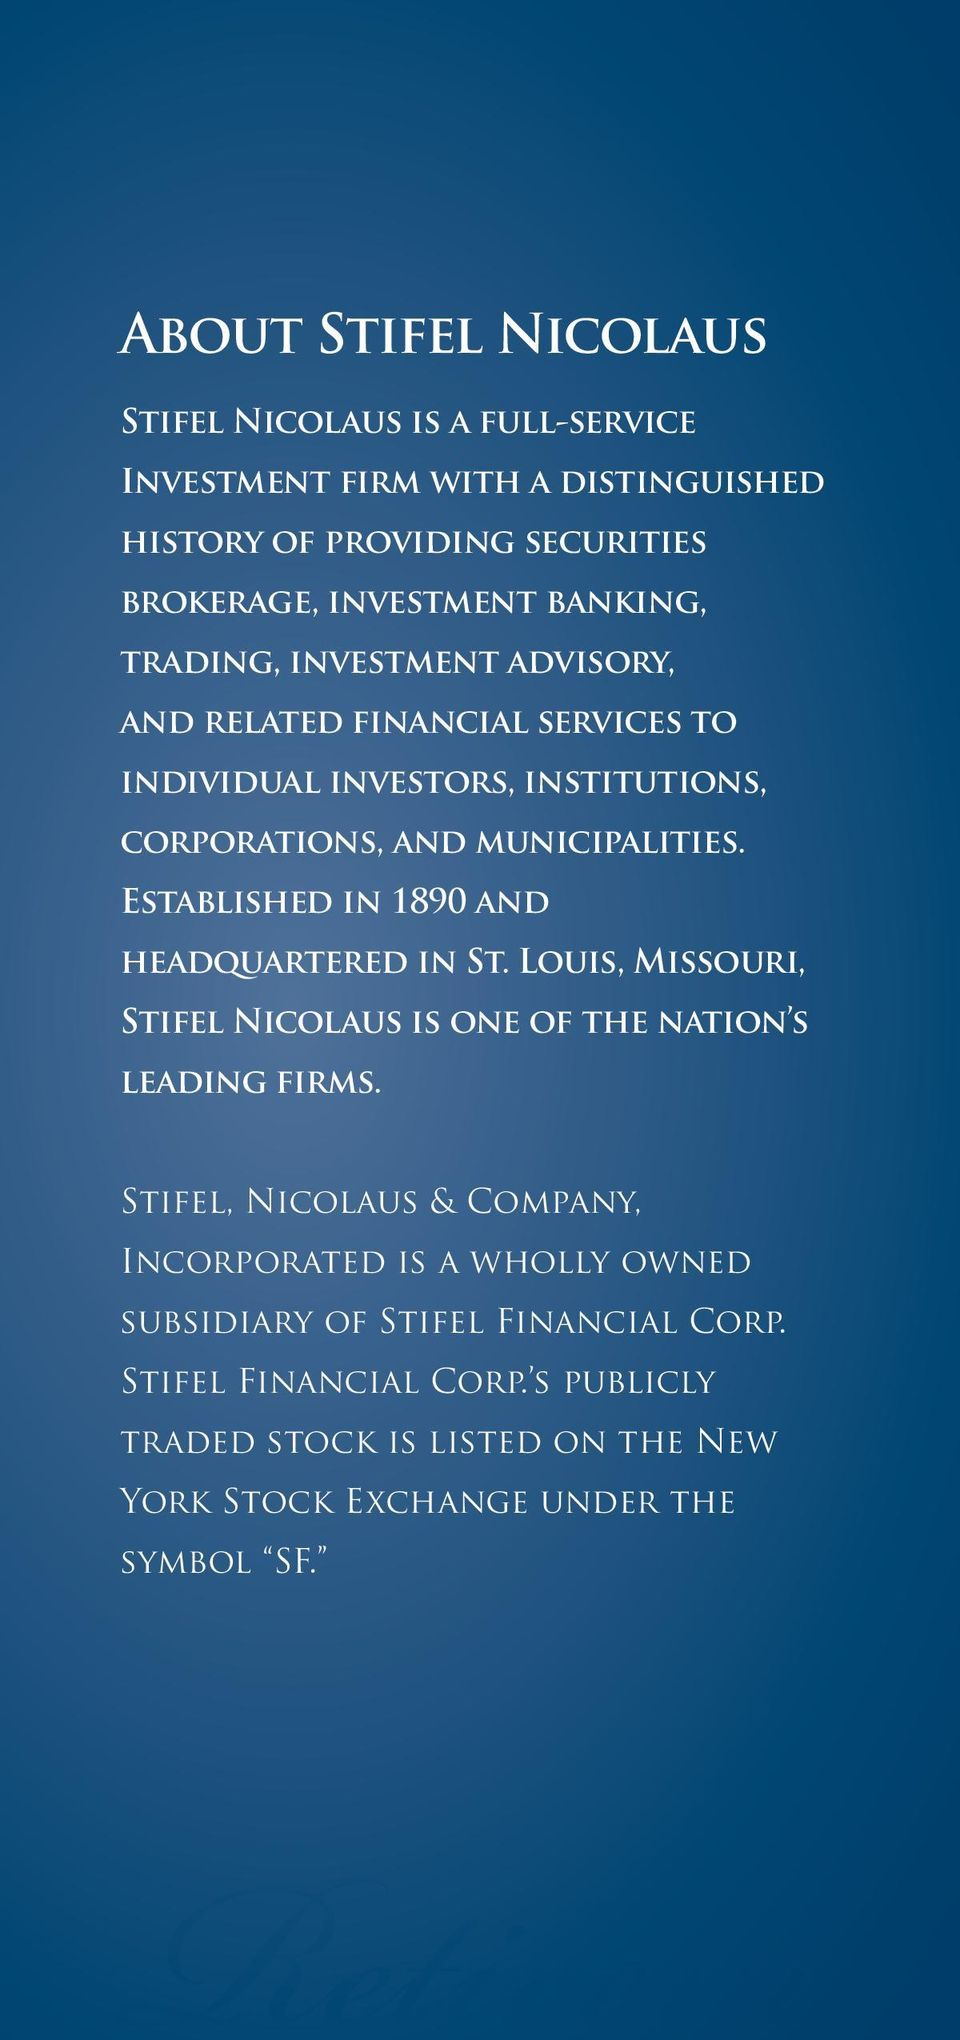 Established in 1890 and headquartered in St. Louis, Missouri, Stifel Nicolaus is one of the nation s leading firms.